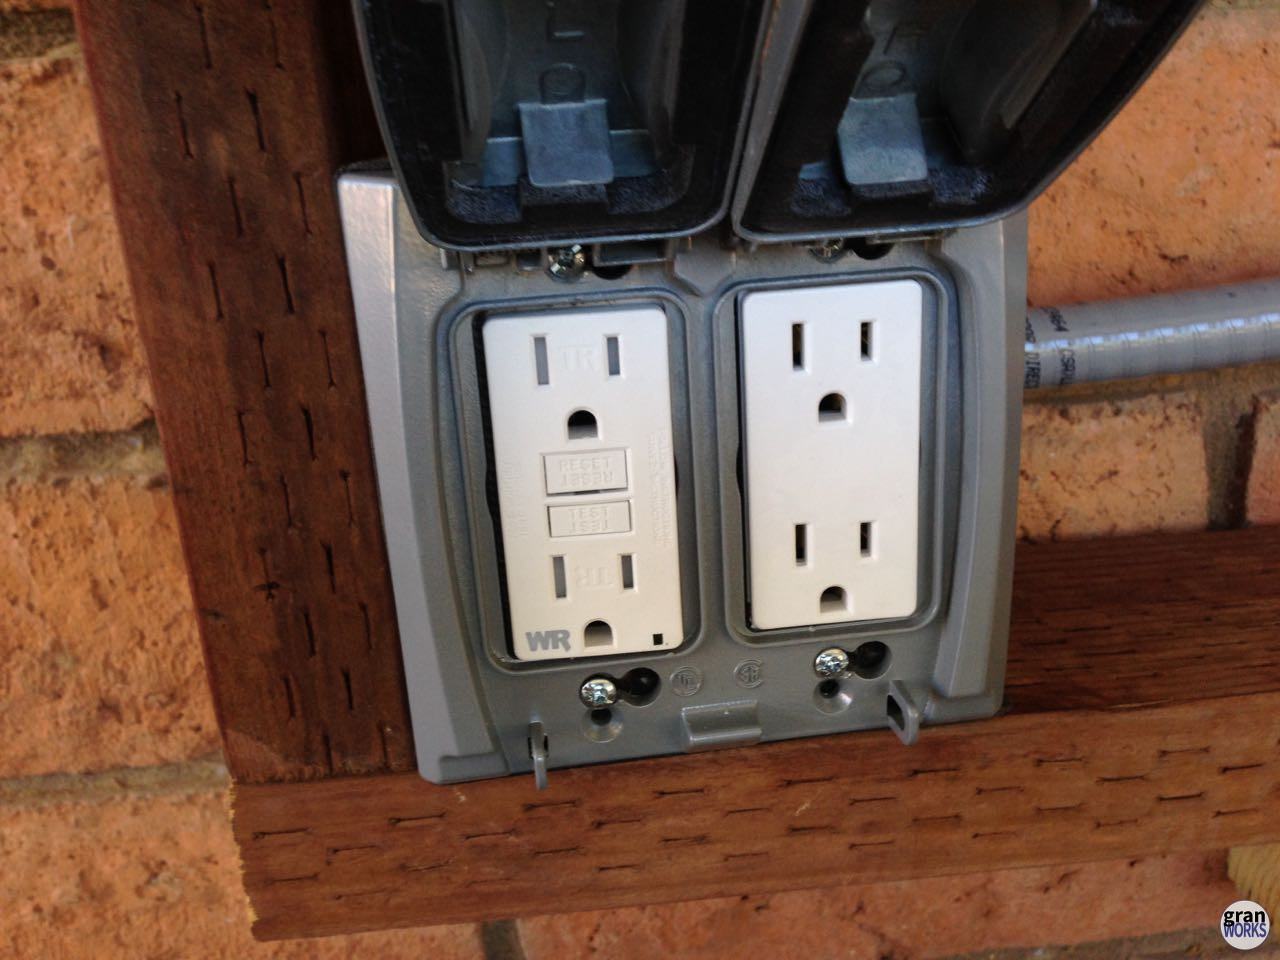 Extend An Electrical Outlet Followup And Fixes Granworks Wiring Basics Video Have A Description Of That Here Since Its Nearly Identical To The Installation From My Original Post I Do Show It Happening Again In